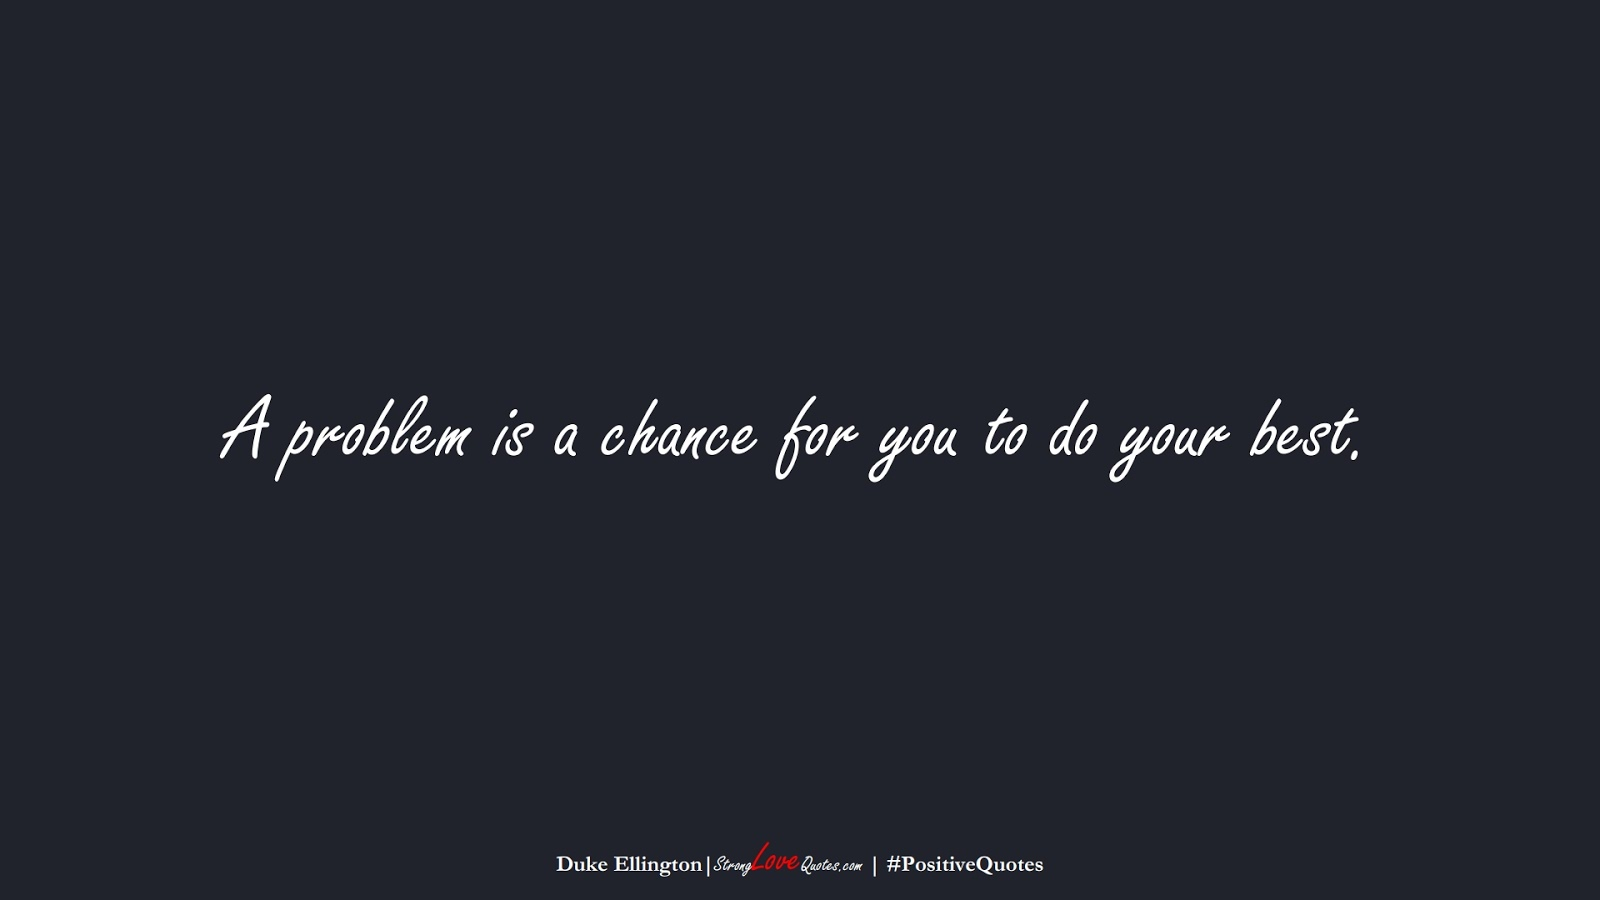 A problem is a chance for you to do your best. (Duke Ellington);  #PositiveQuotes